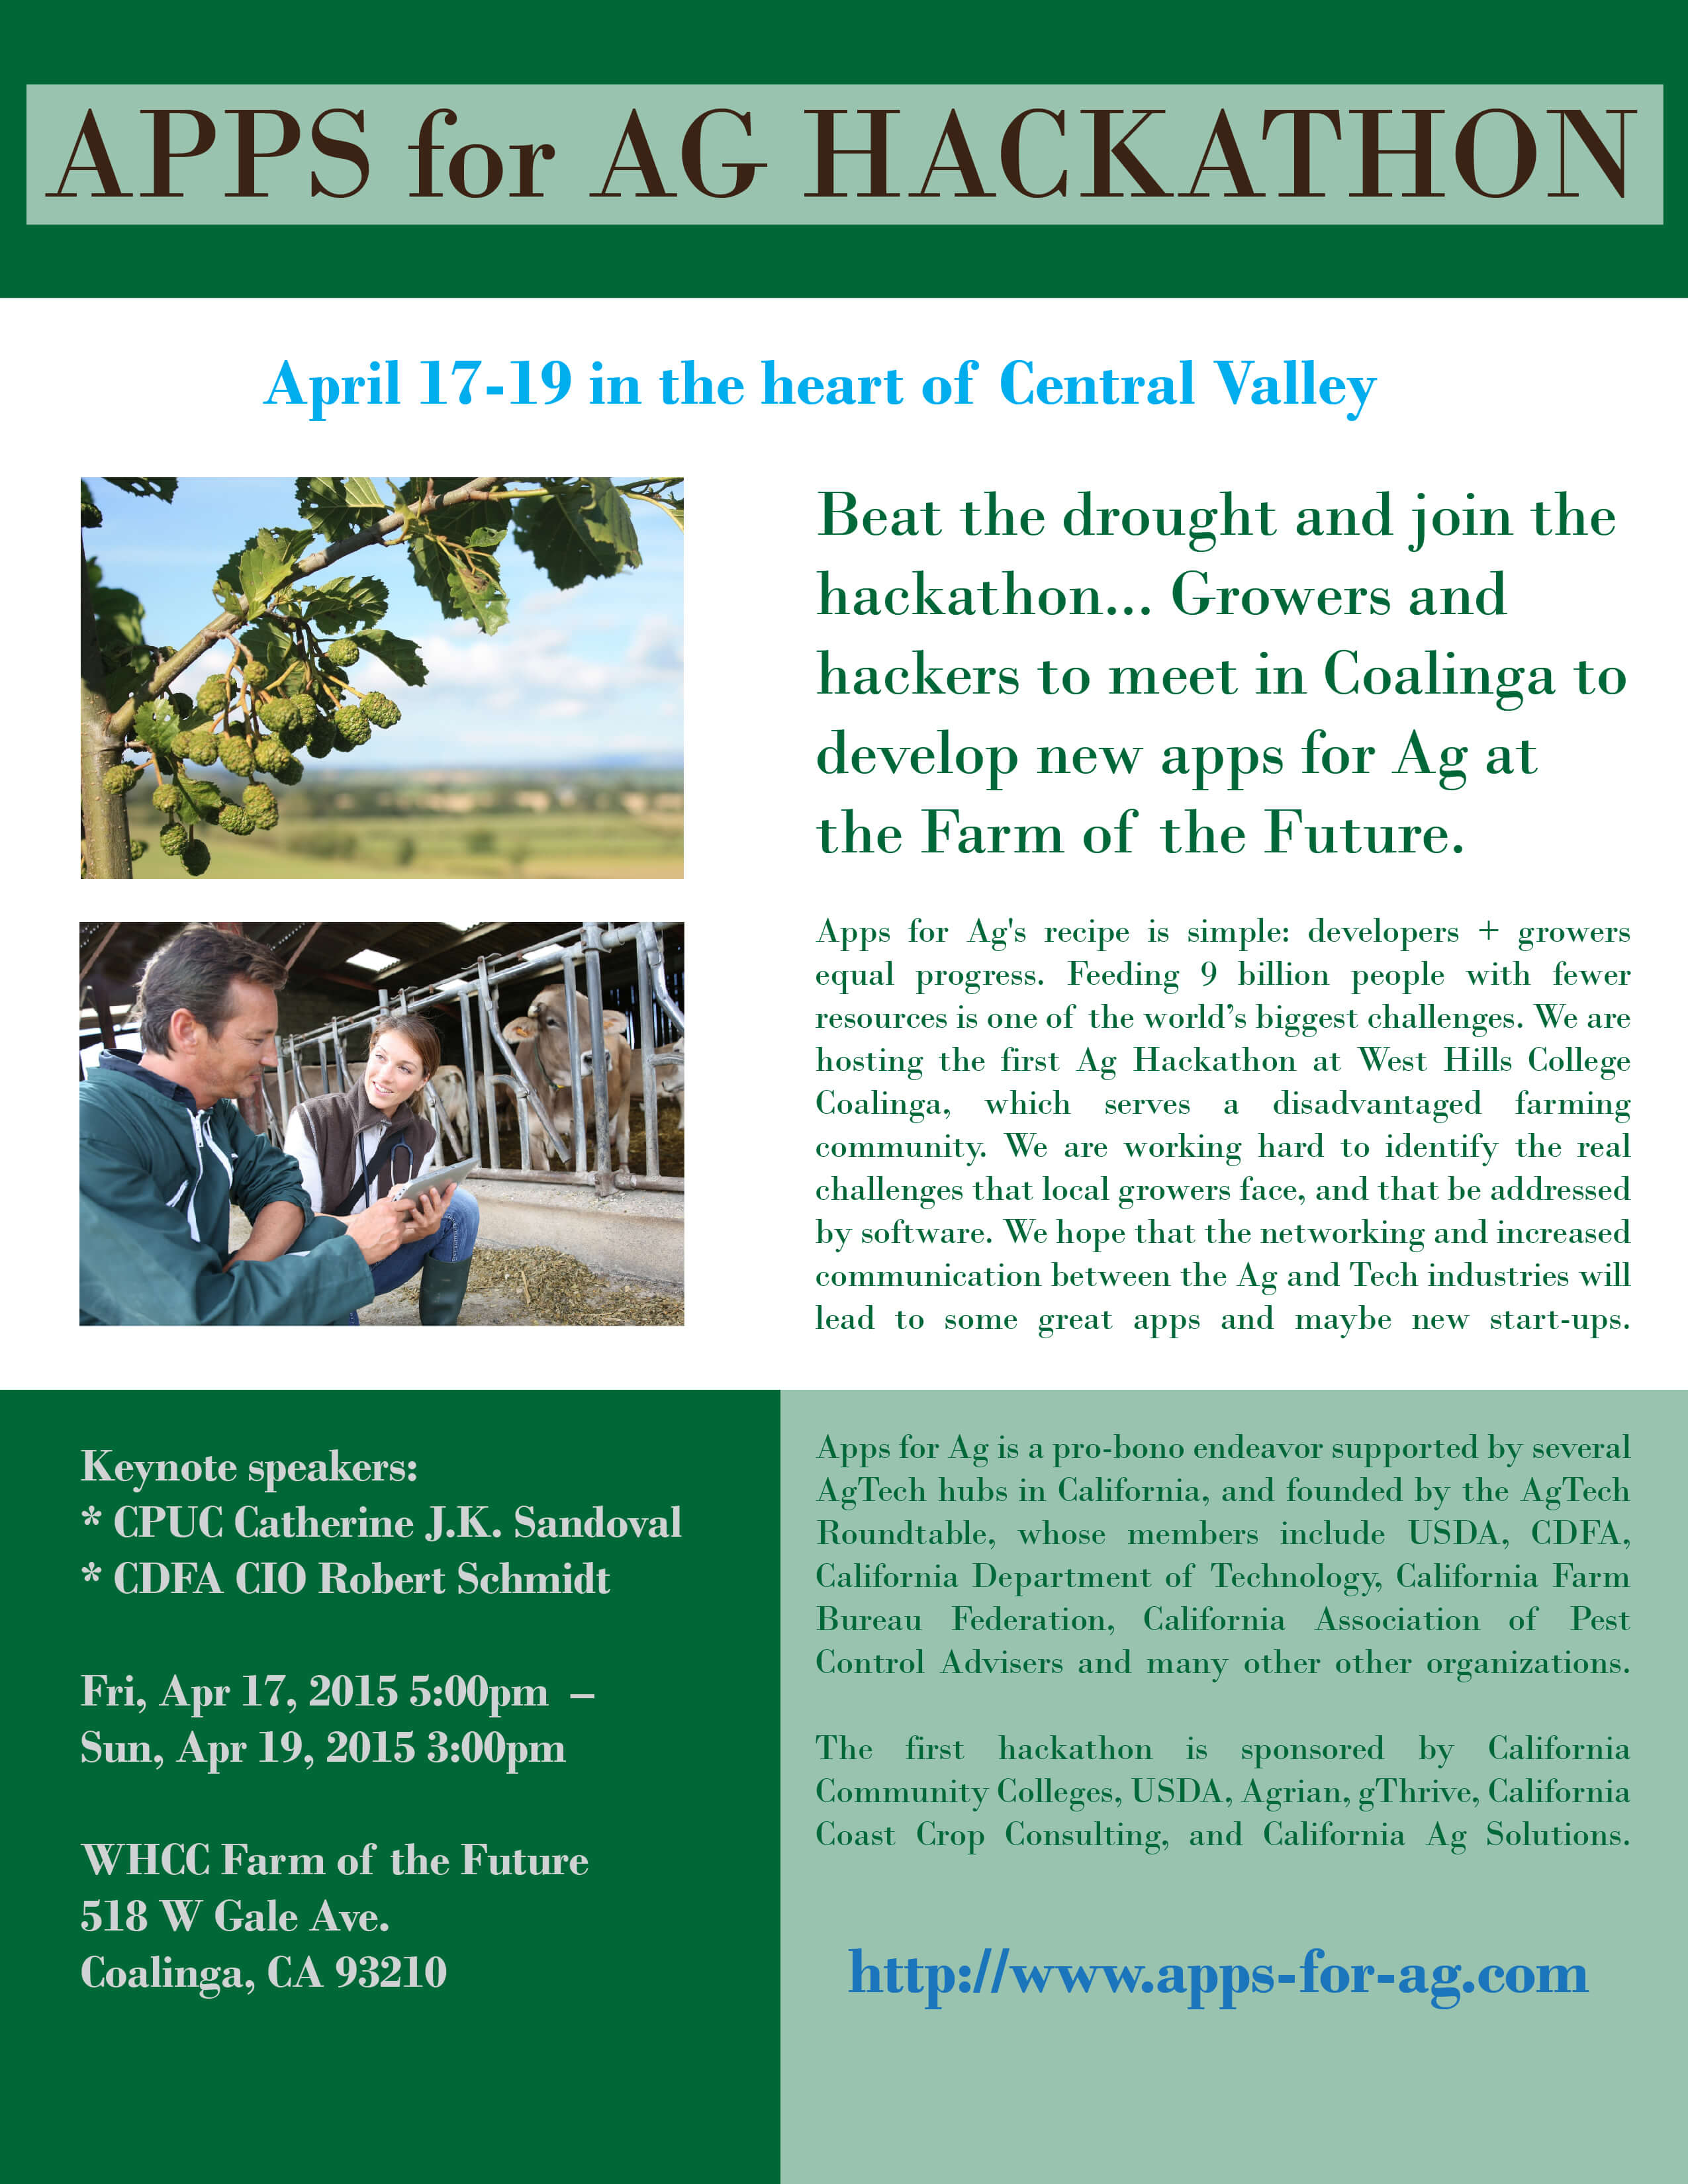 Apps For Ag | West Hills College Coalinga